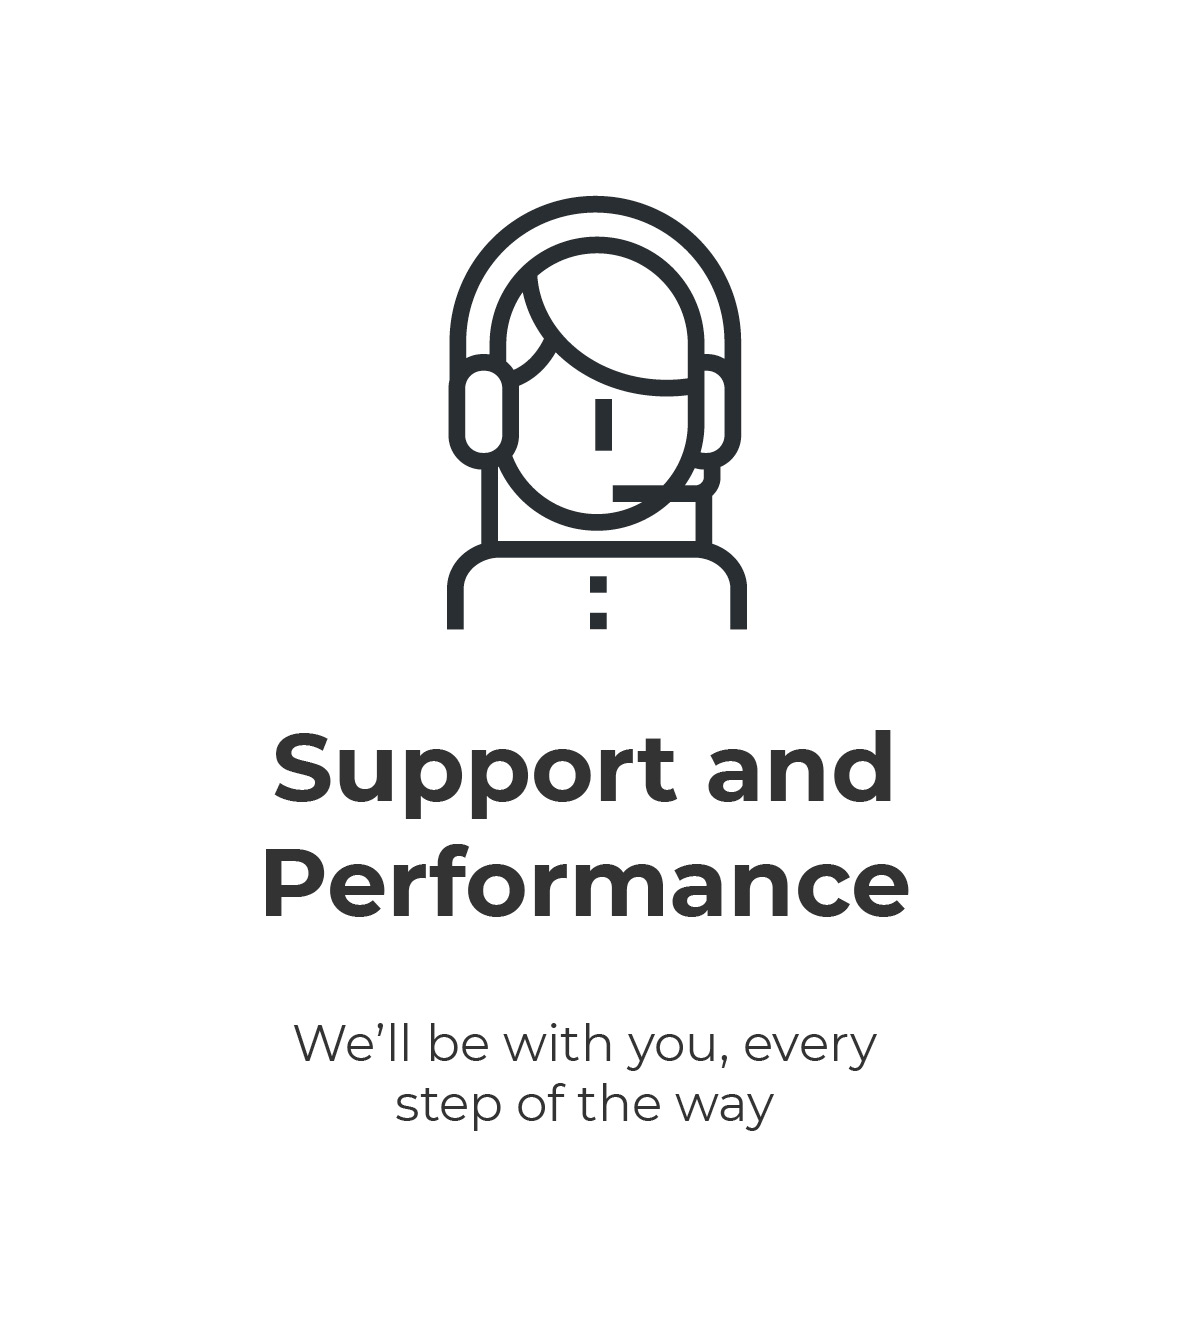 Support and Performance